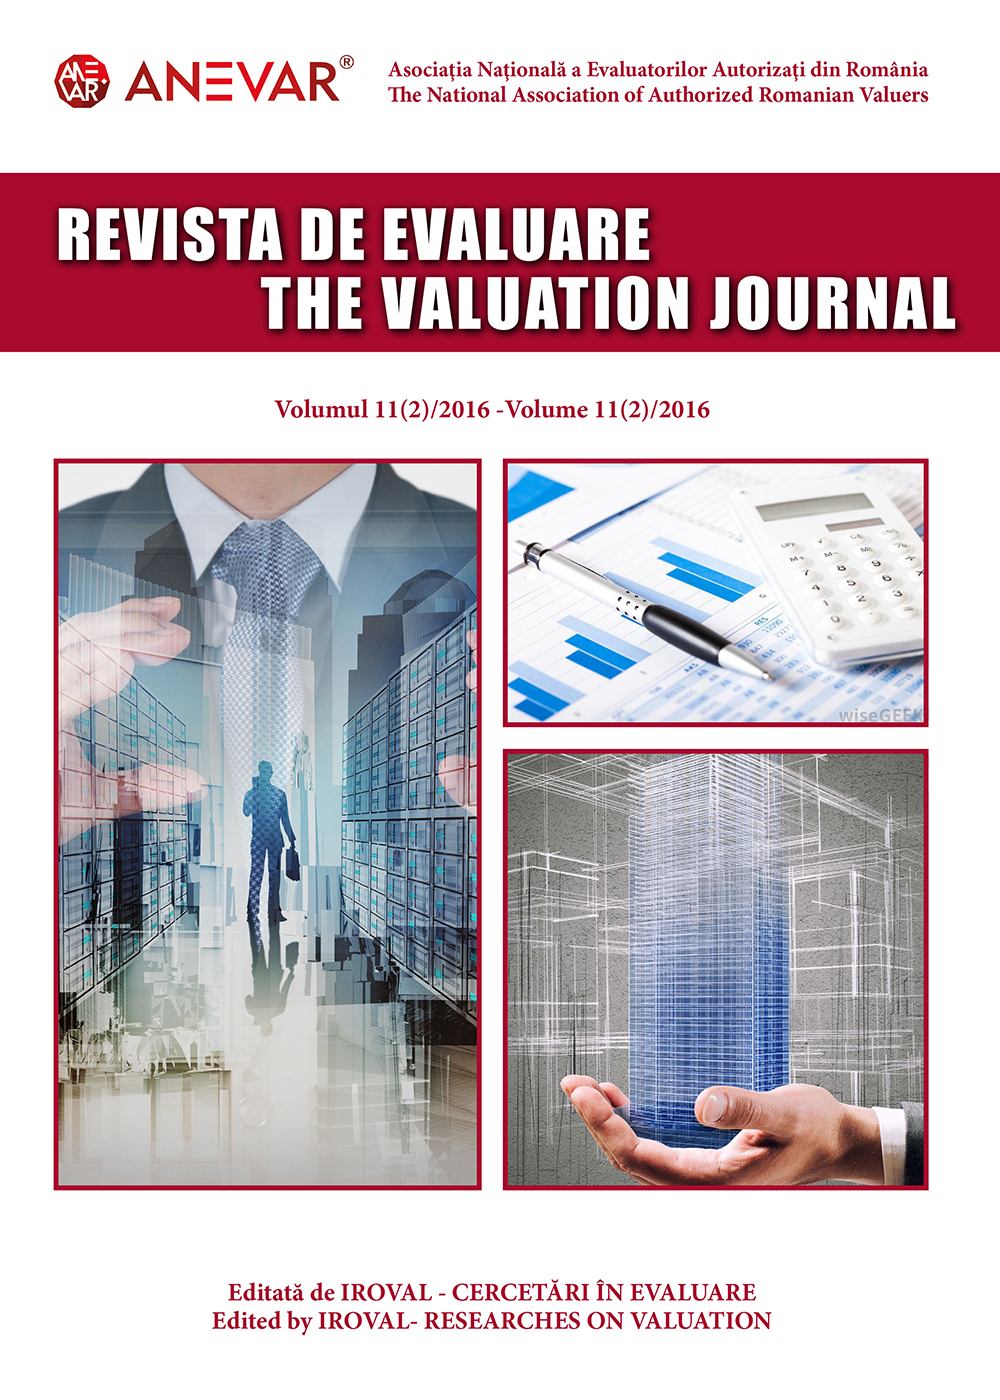 REVISTA DE EVALUARE / THE VALUATION JOURNAL - vol. 11 (2/2016)